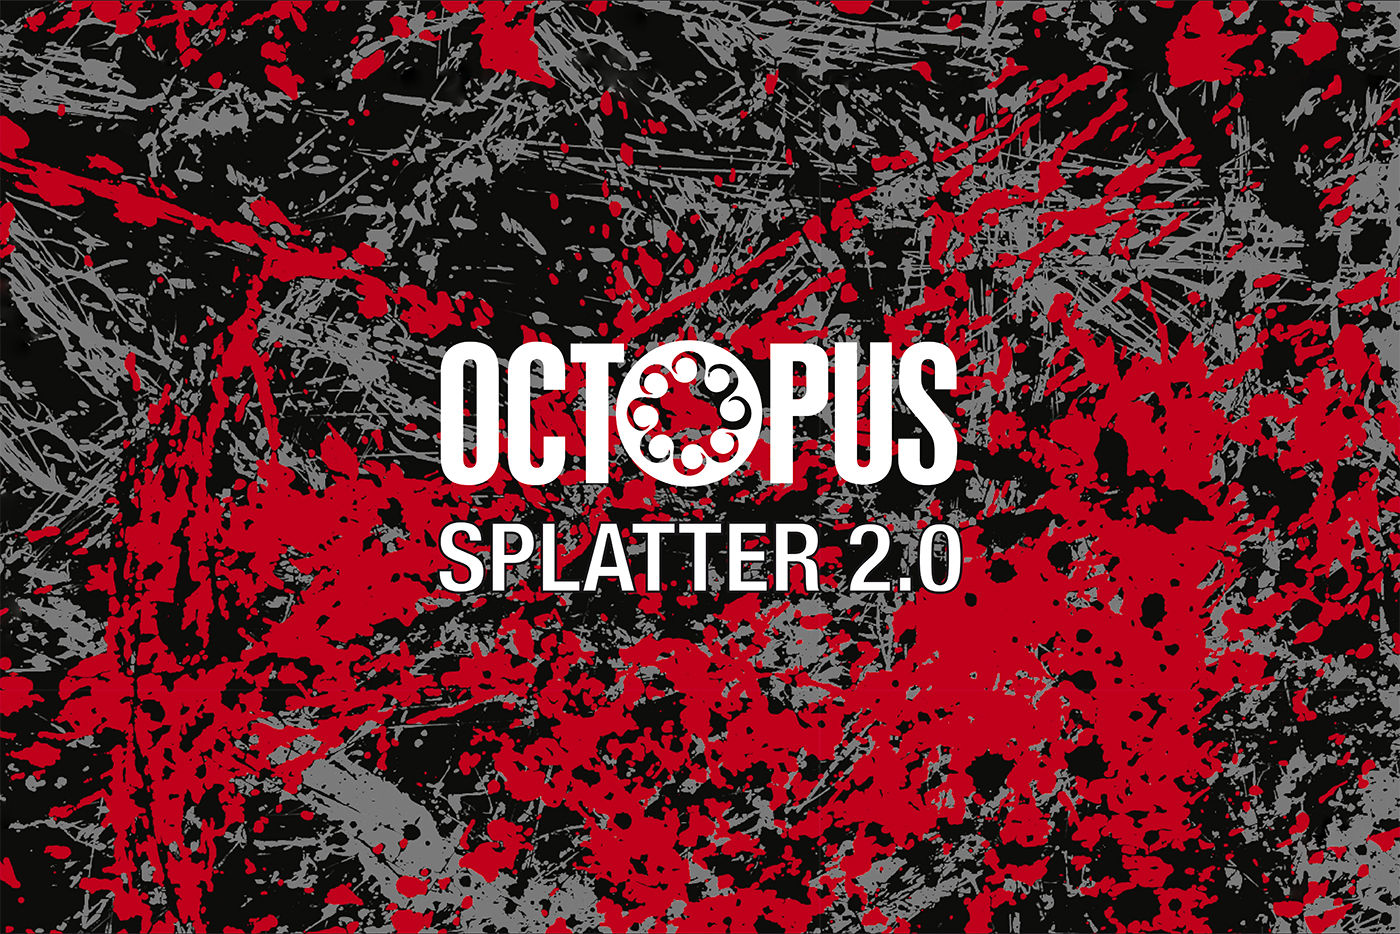 Octopus Splatter 2.0 Capsule Collection Limited edition release!